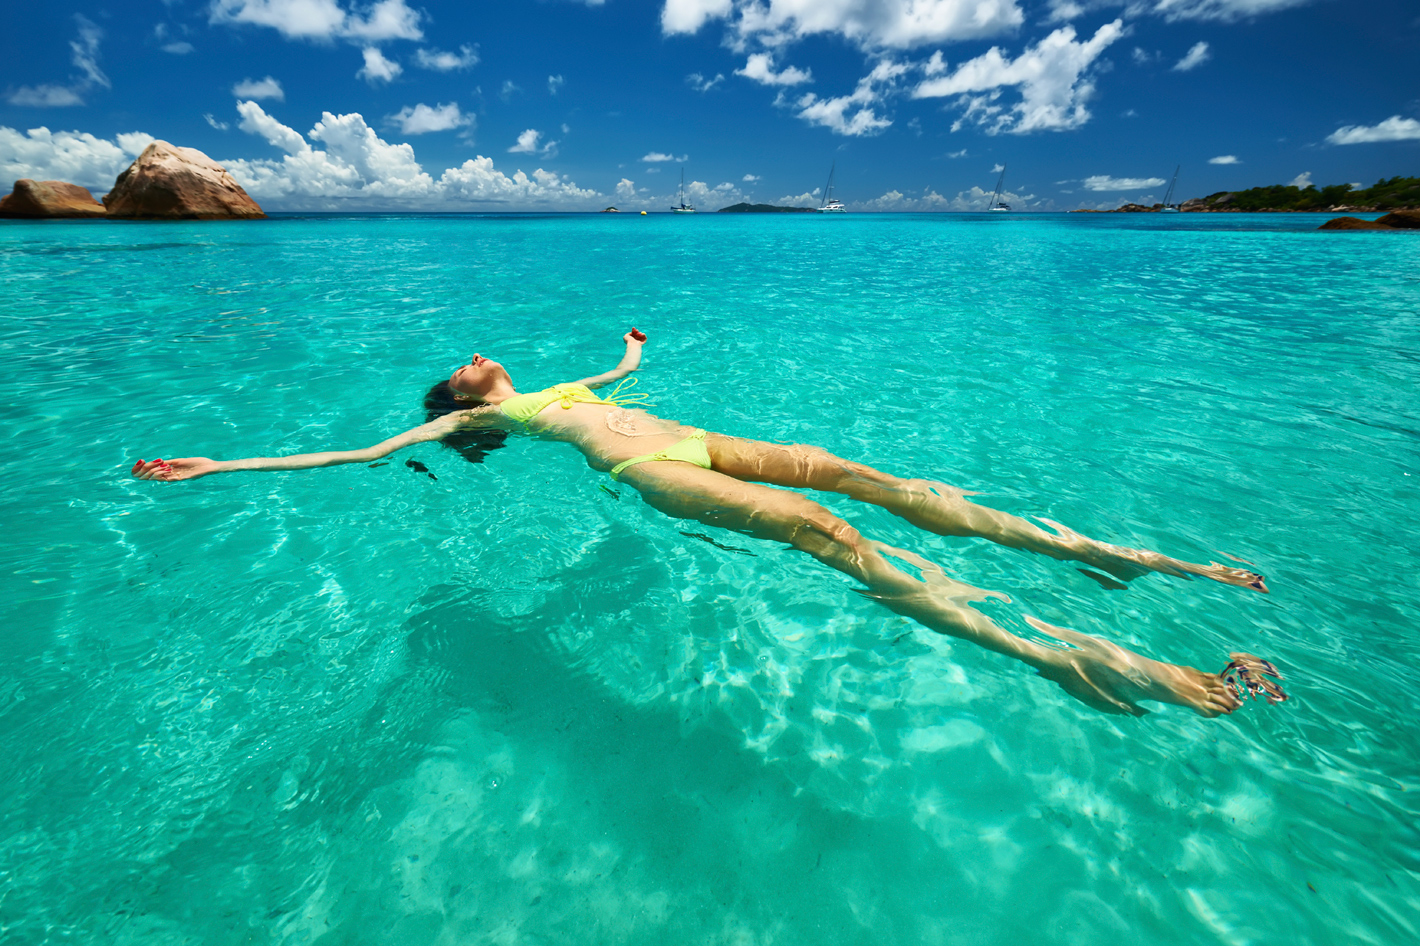 Girl floating in water in Indian Ocean